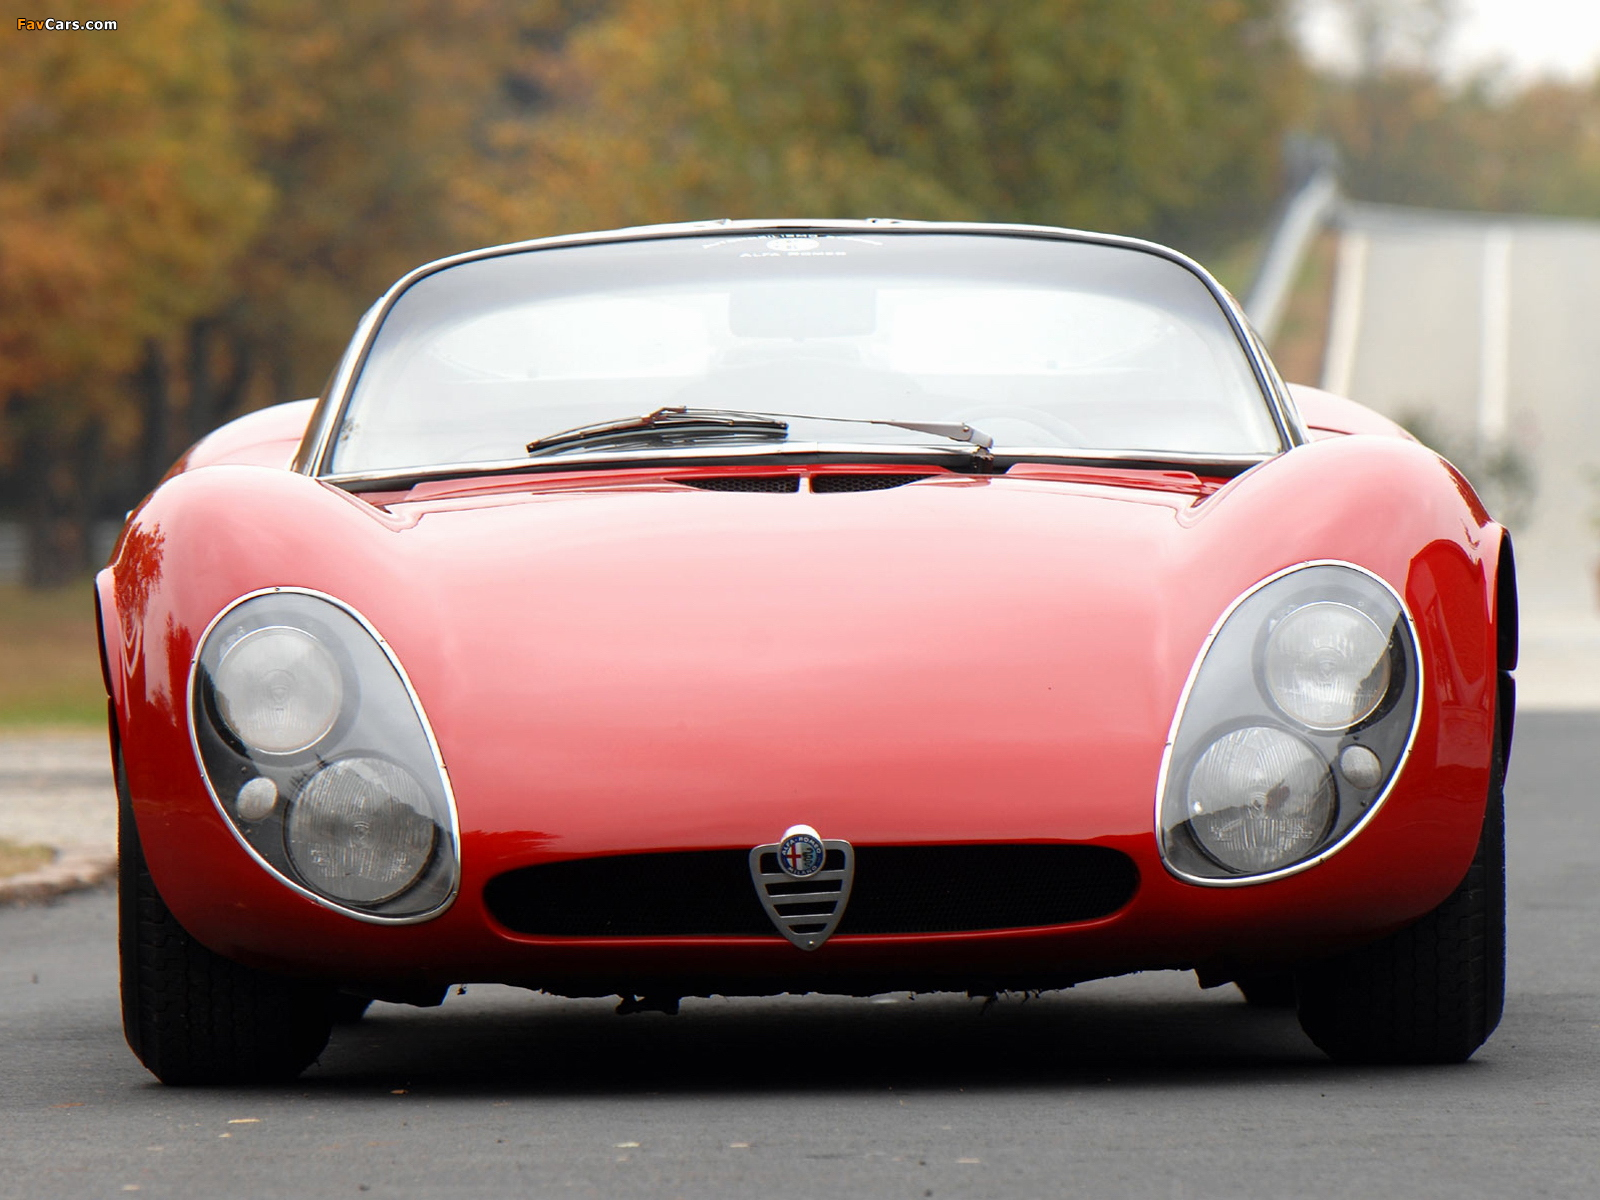 Pictures Alfa Romeo Tipo 33 Stradale Prototipo 1967 144574 together with Indochine Remplit Le Stade De France Et Rajoute Une Date 1918 furthermore Baselworld 2013 Hublot Big Bang Caviar Red Gold Diamonds moreover 1985 Alfa Romeo GTV Overview C10929 additionally Alfa Romeo Tipo 33 Stradale 25191. on alfa romeo 33 stradale